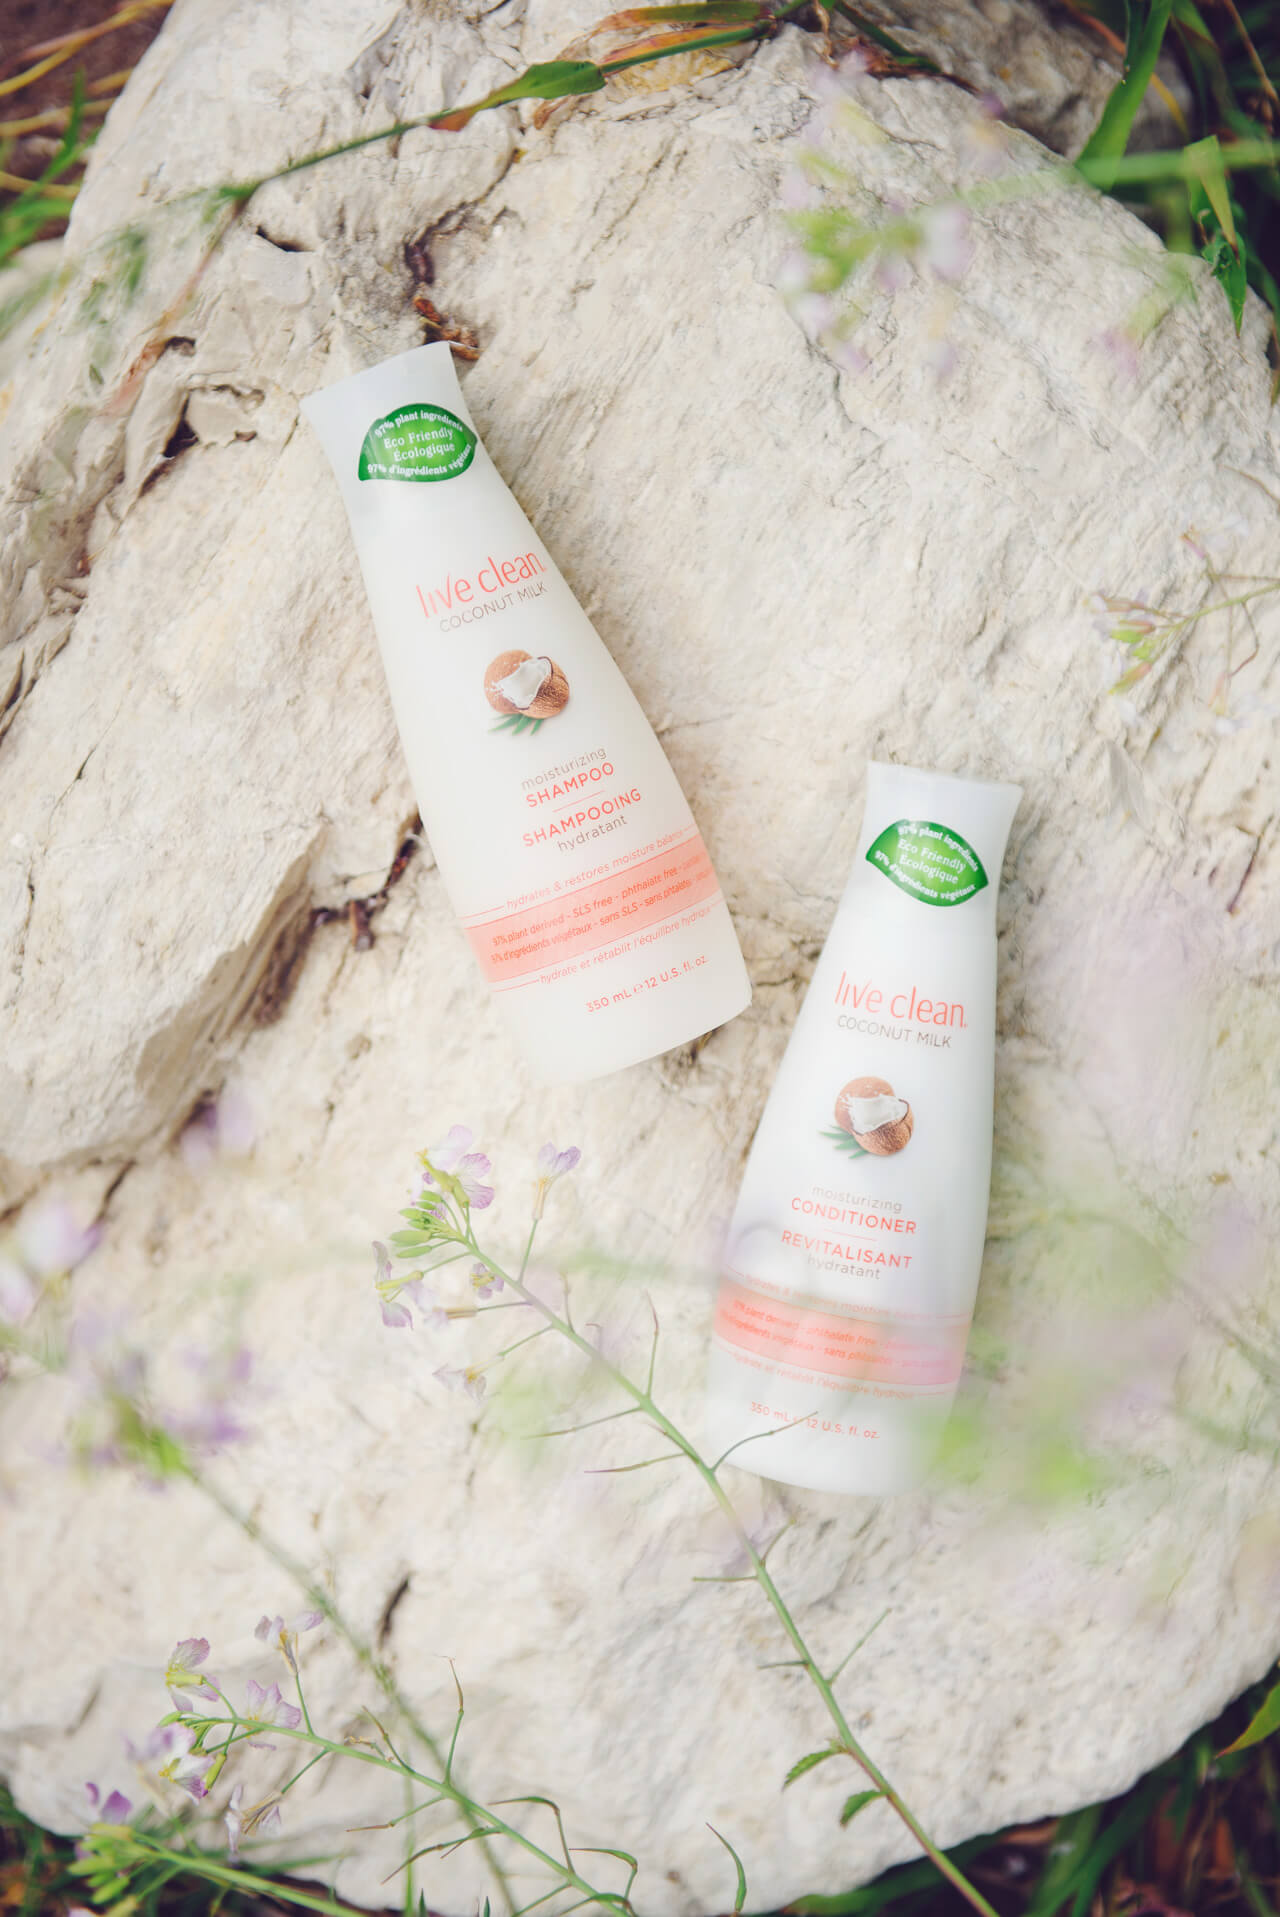 natural shampoo and conditioner to try from live clean